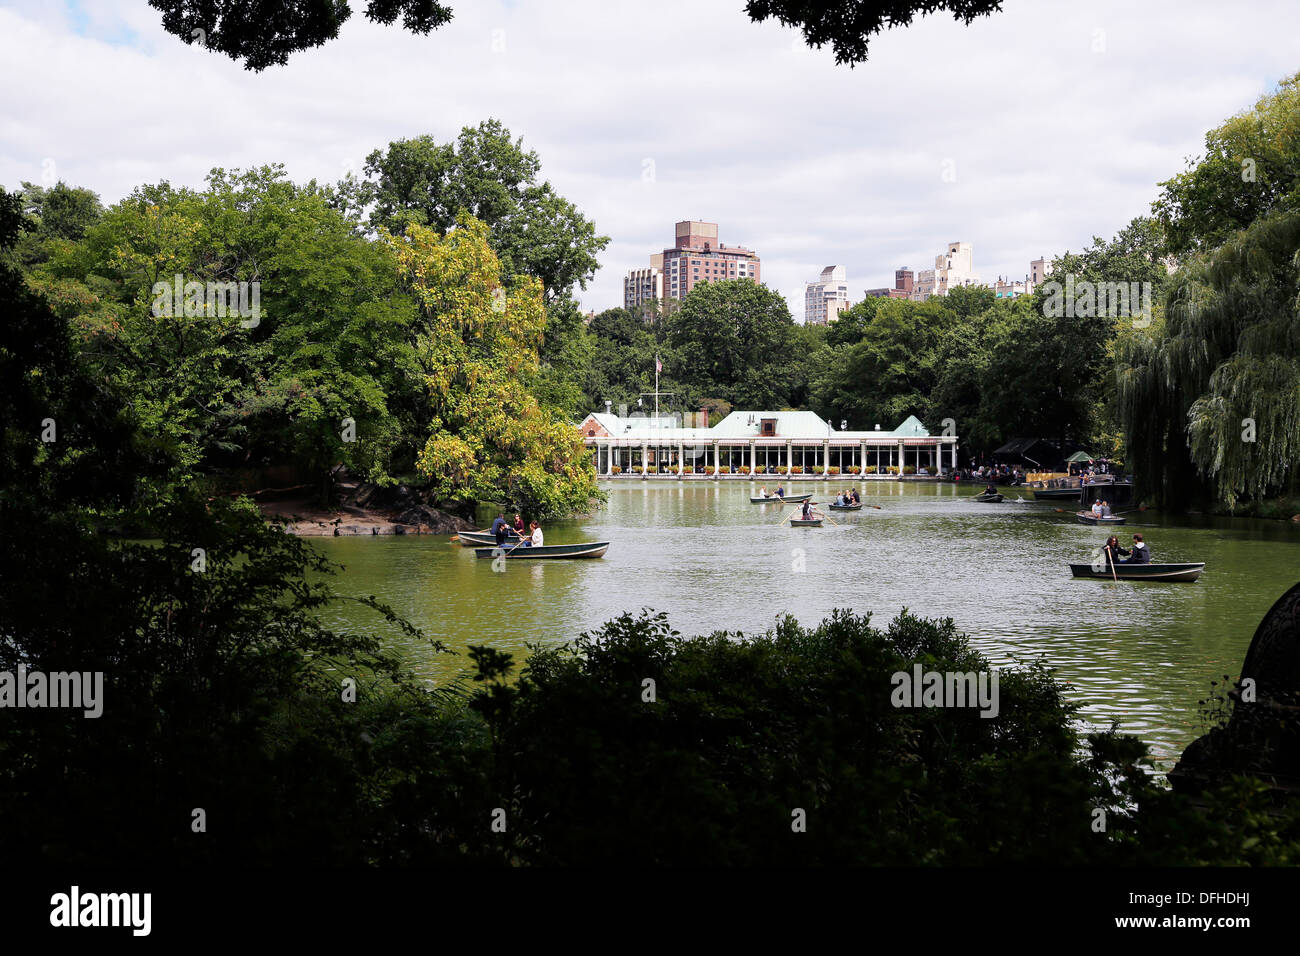 Looking at the Central Park Boathouse, People in Rowboats on the Lake, New York City - Stock Image